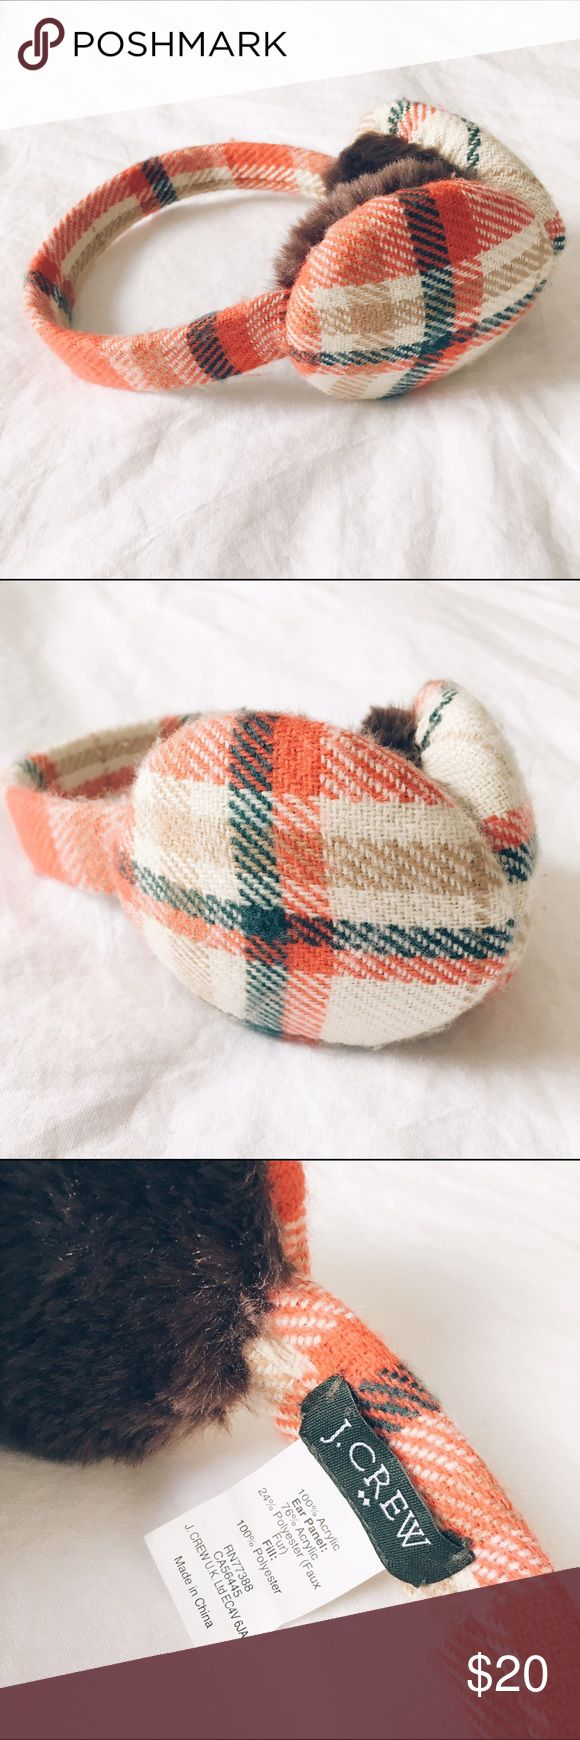 J.Crew Plaid Earmuffs Red, blue, and cream plaid earmuffs with faux fur lining. J. Crew Accessories